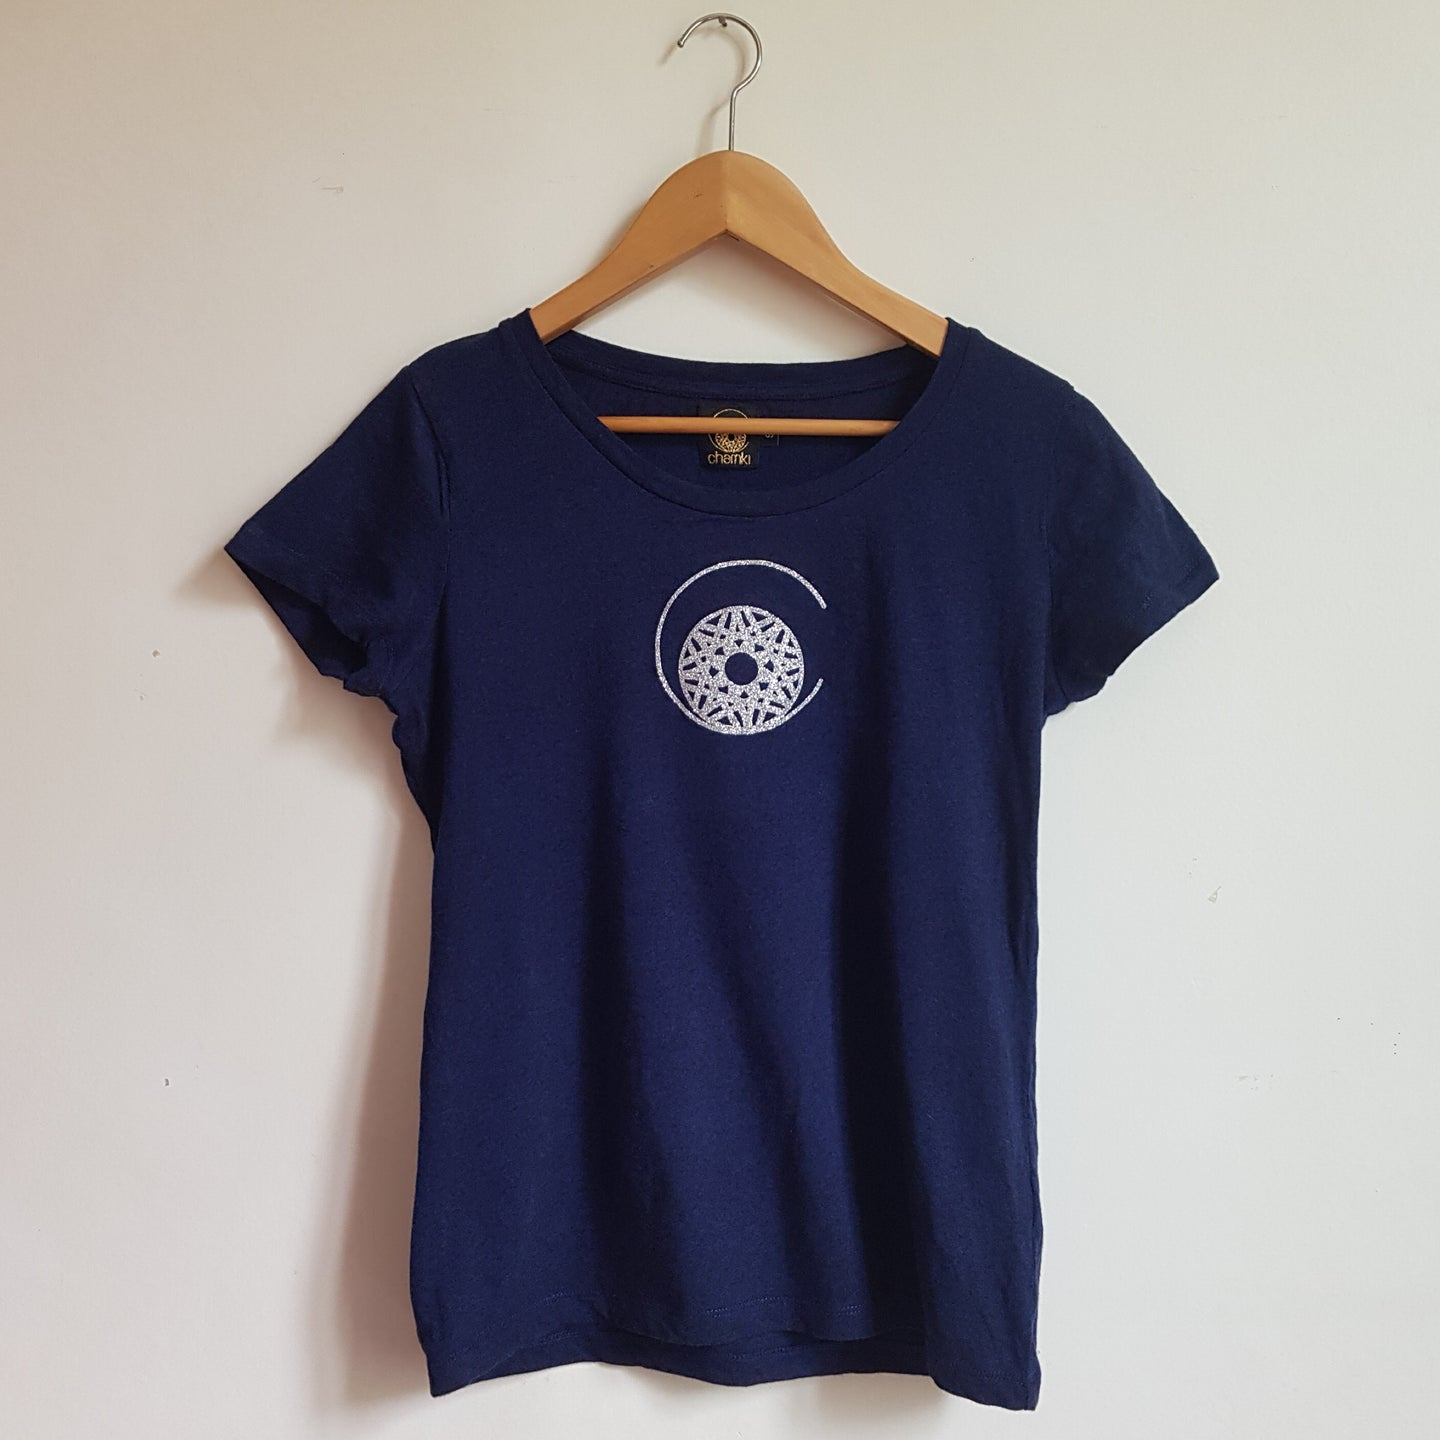 T-shirt bleu chiné